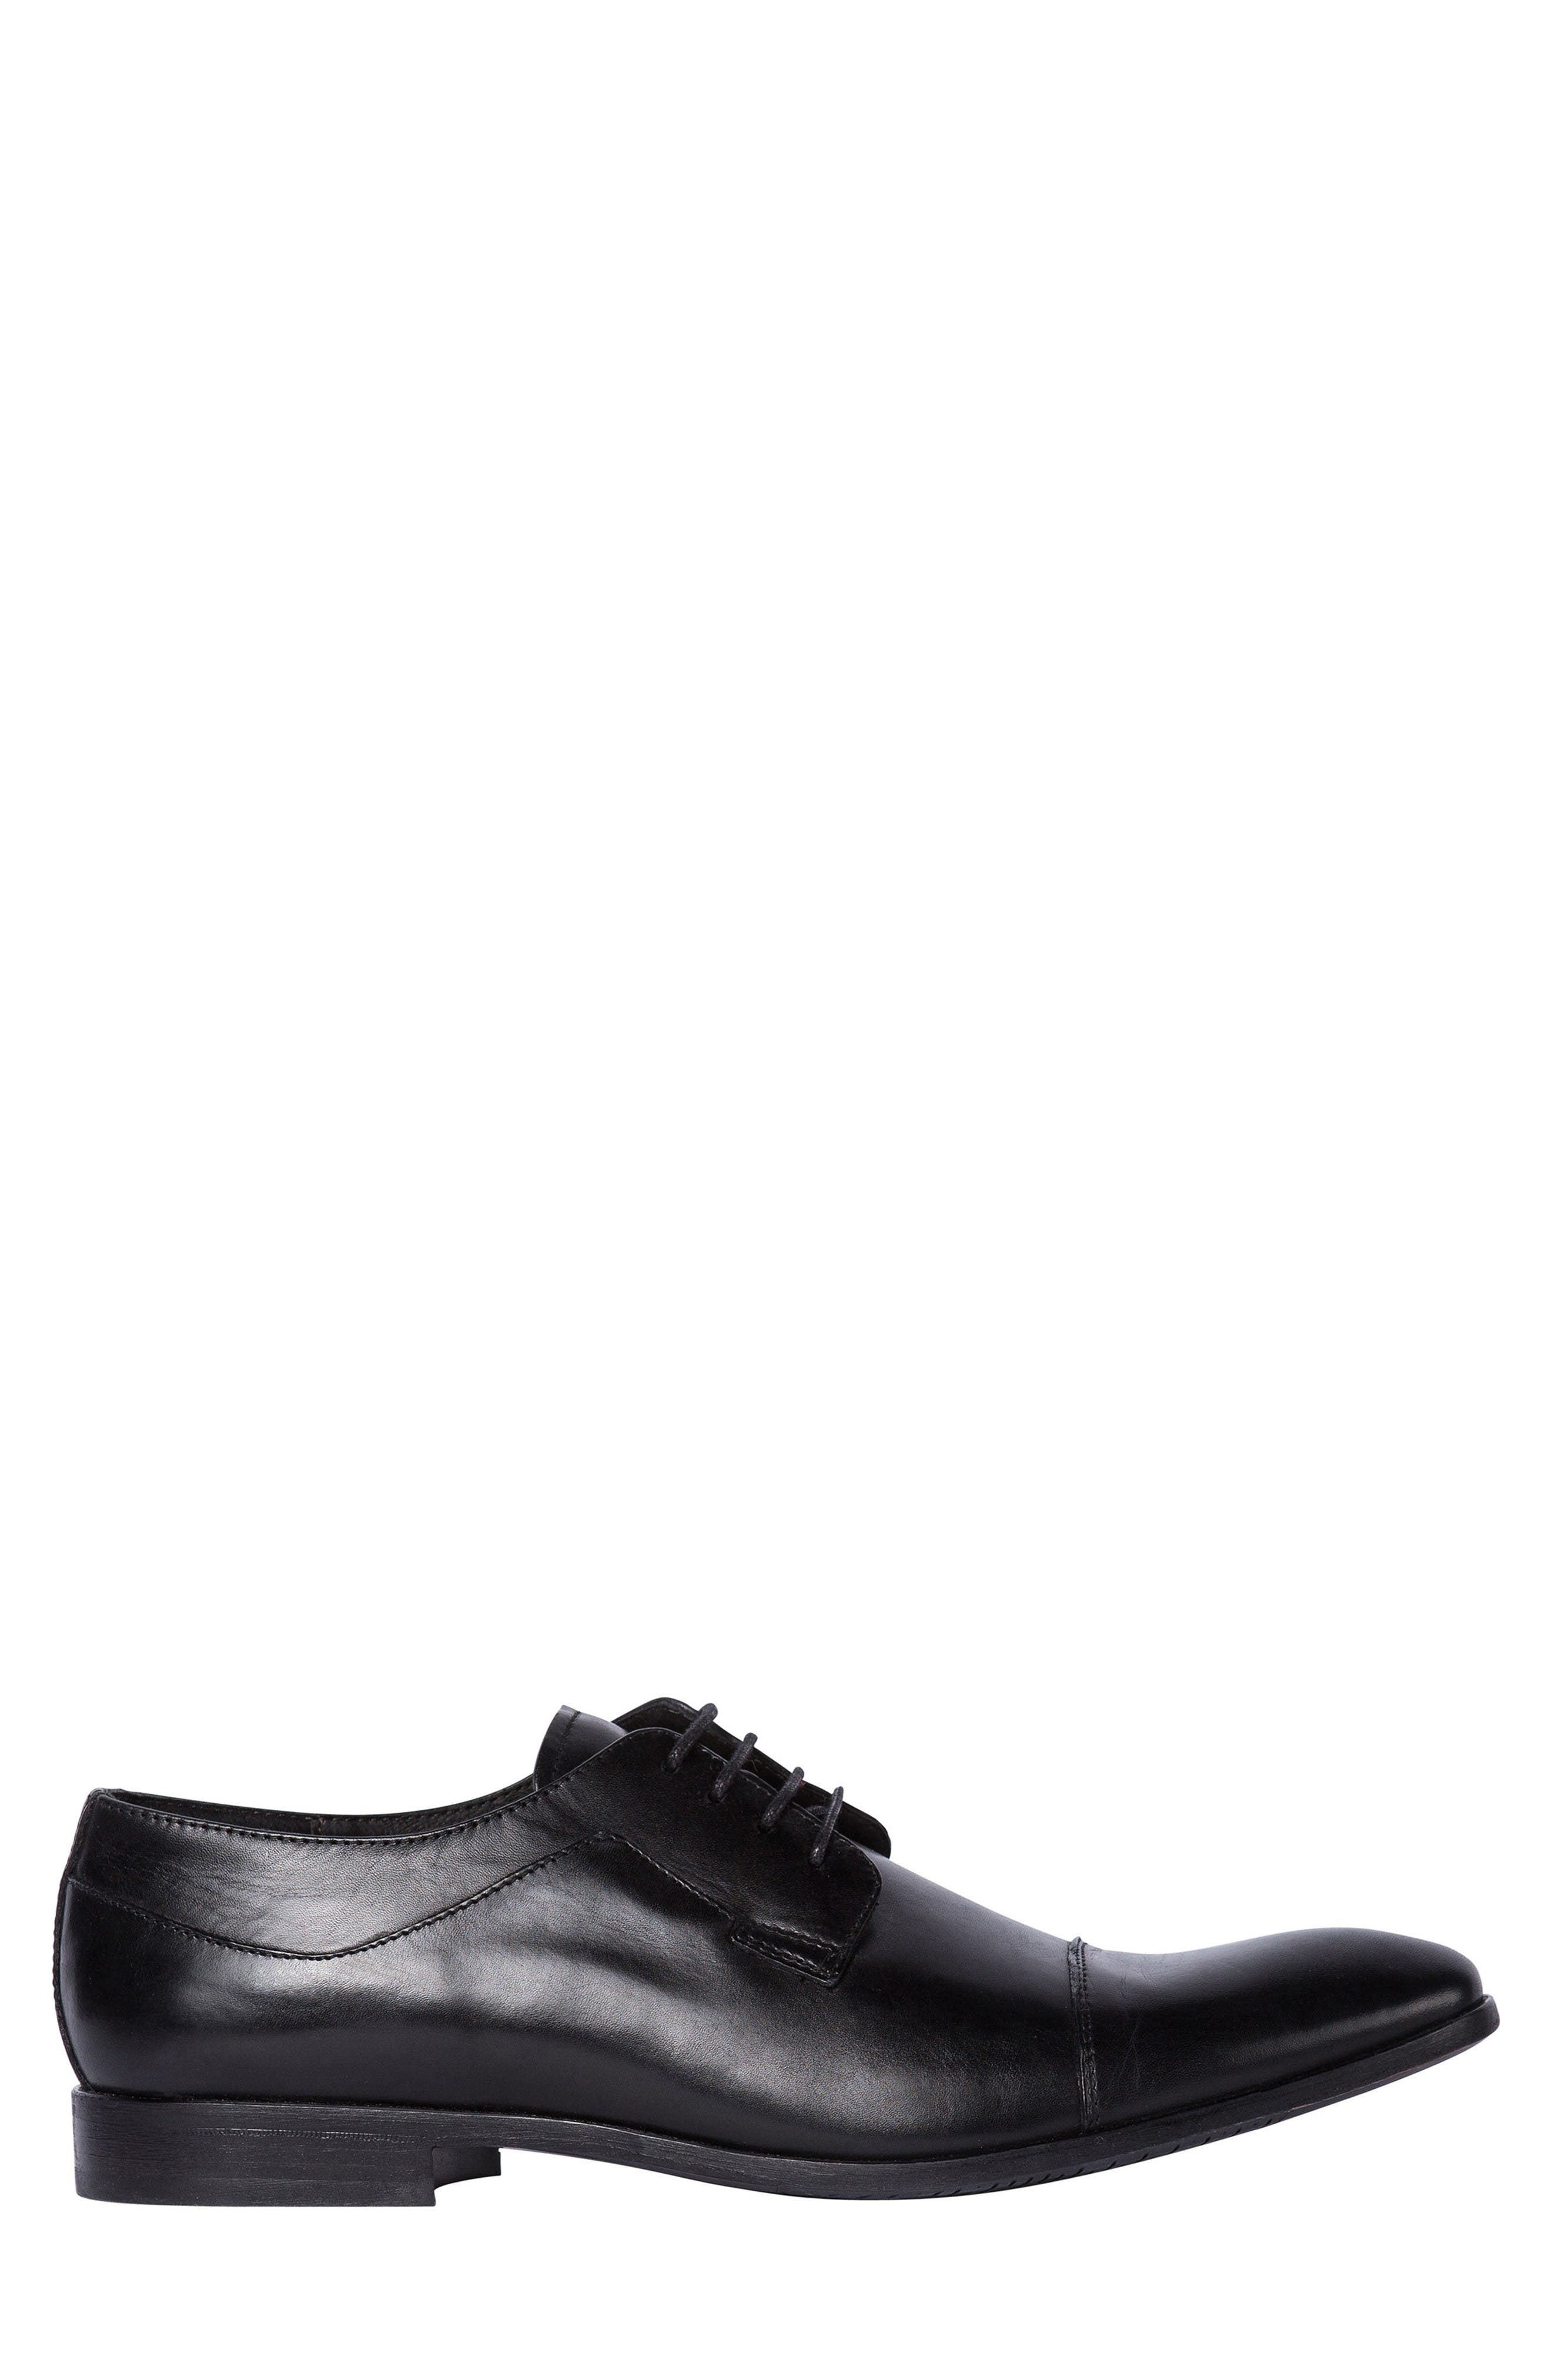 Admiral's Way Cap Toe Derby,                             Alternate thumbnail 3, color,                             Nero Leather